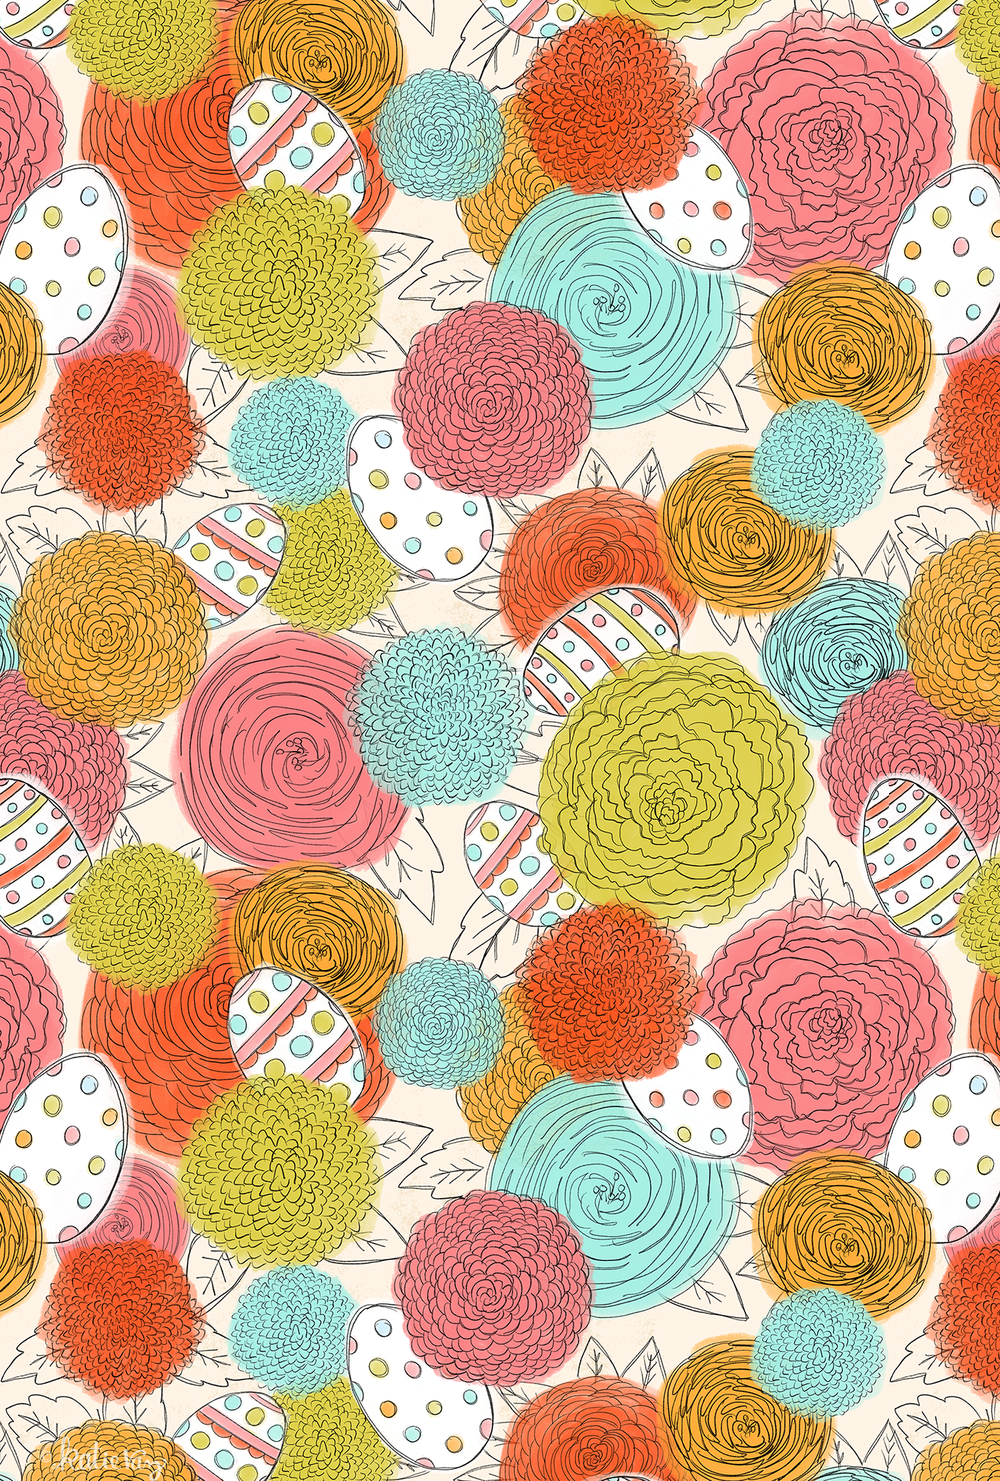 Katie Vaz | Illustration and Surface Design